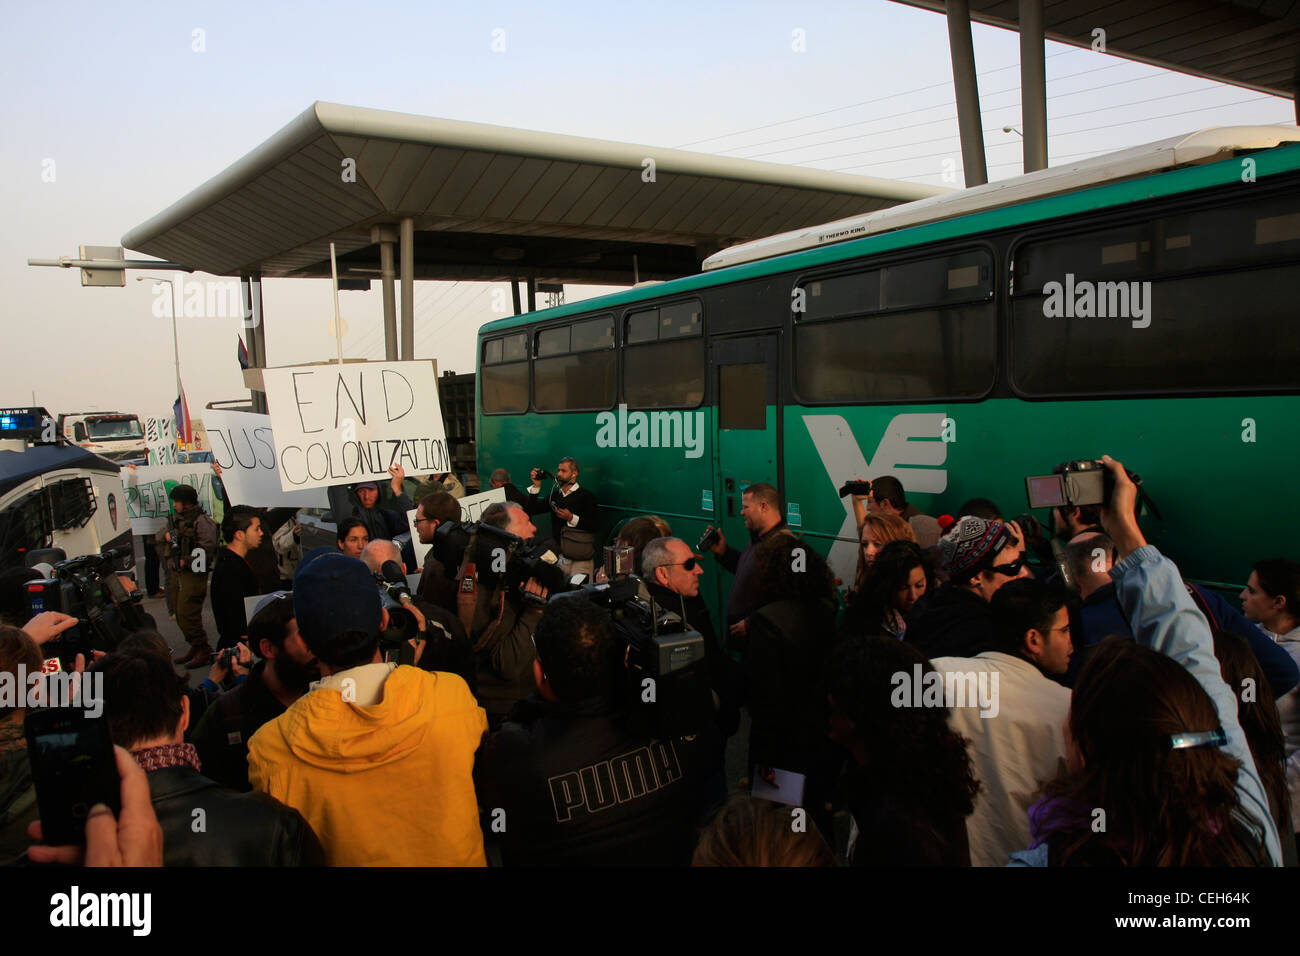 A crowd of activists gather to support the 'Freedom Riders' as they attempt to ride the bus to Jerusalem. - Stock Image